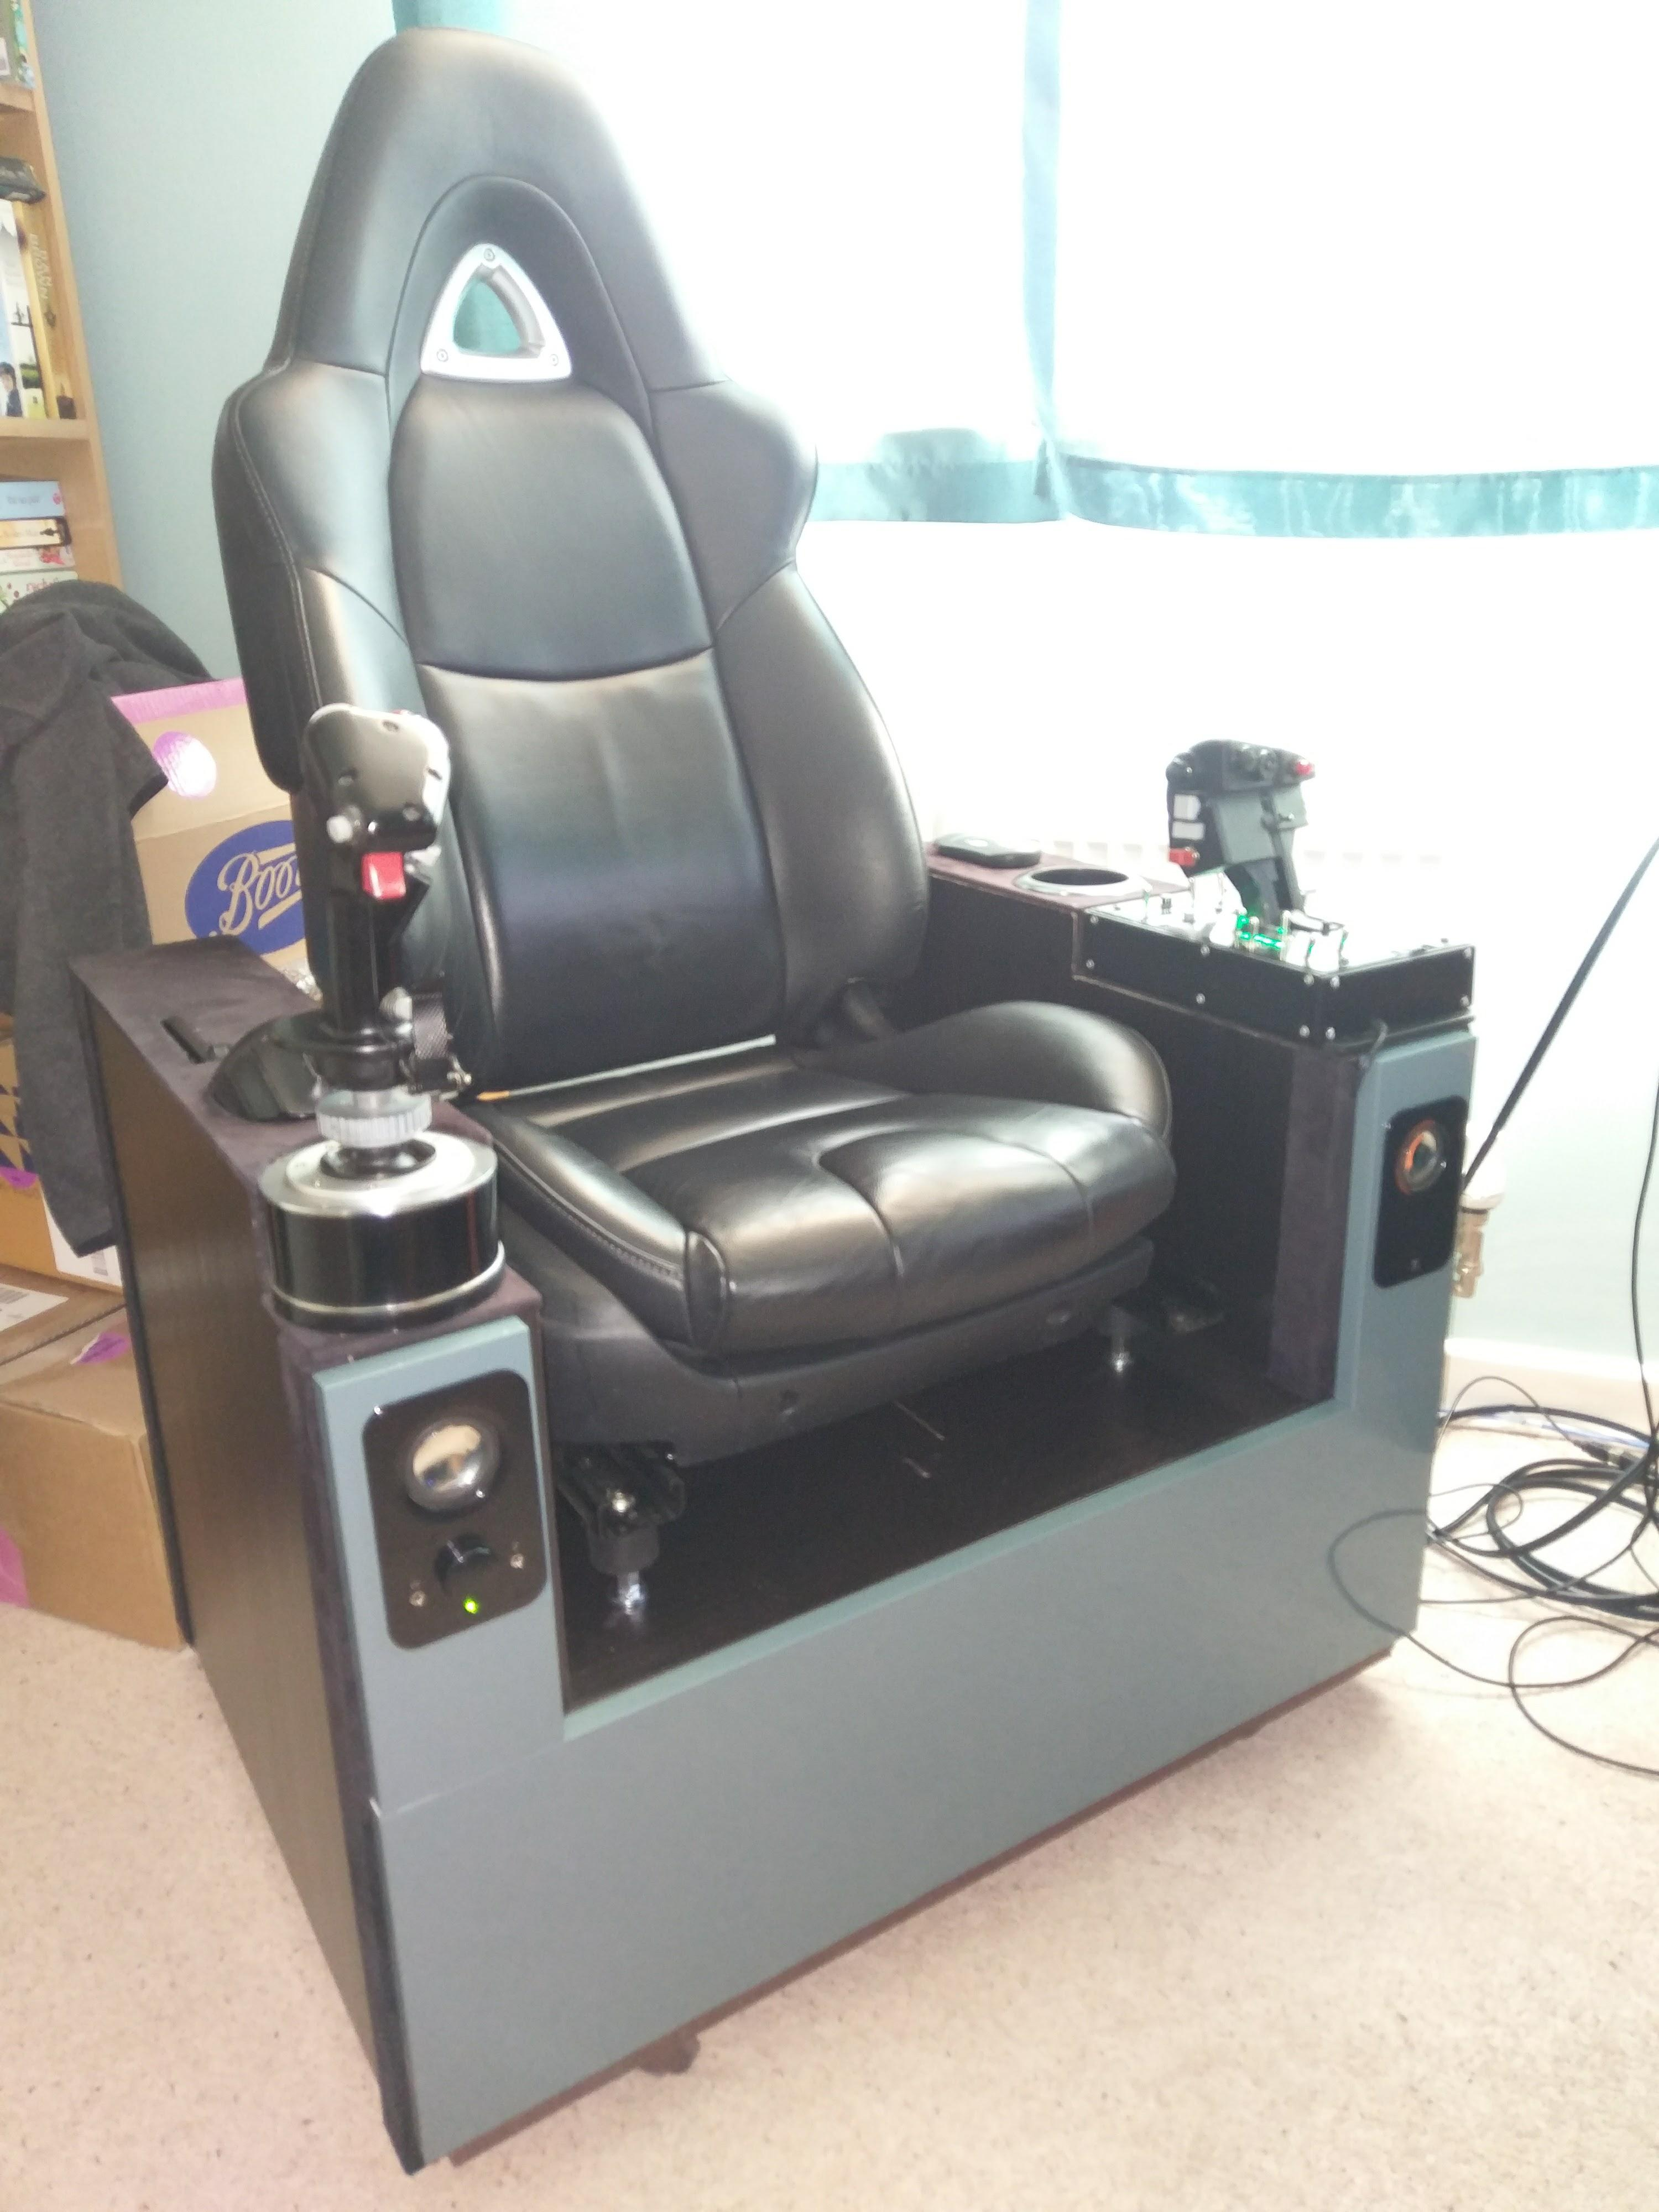 Elite Massage Chair I Built This Hotas Chair Last Year And Recently Trashed It Info